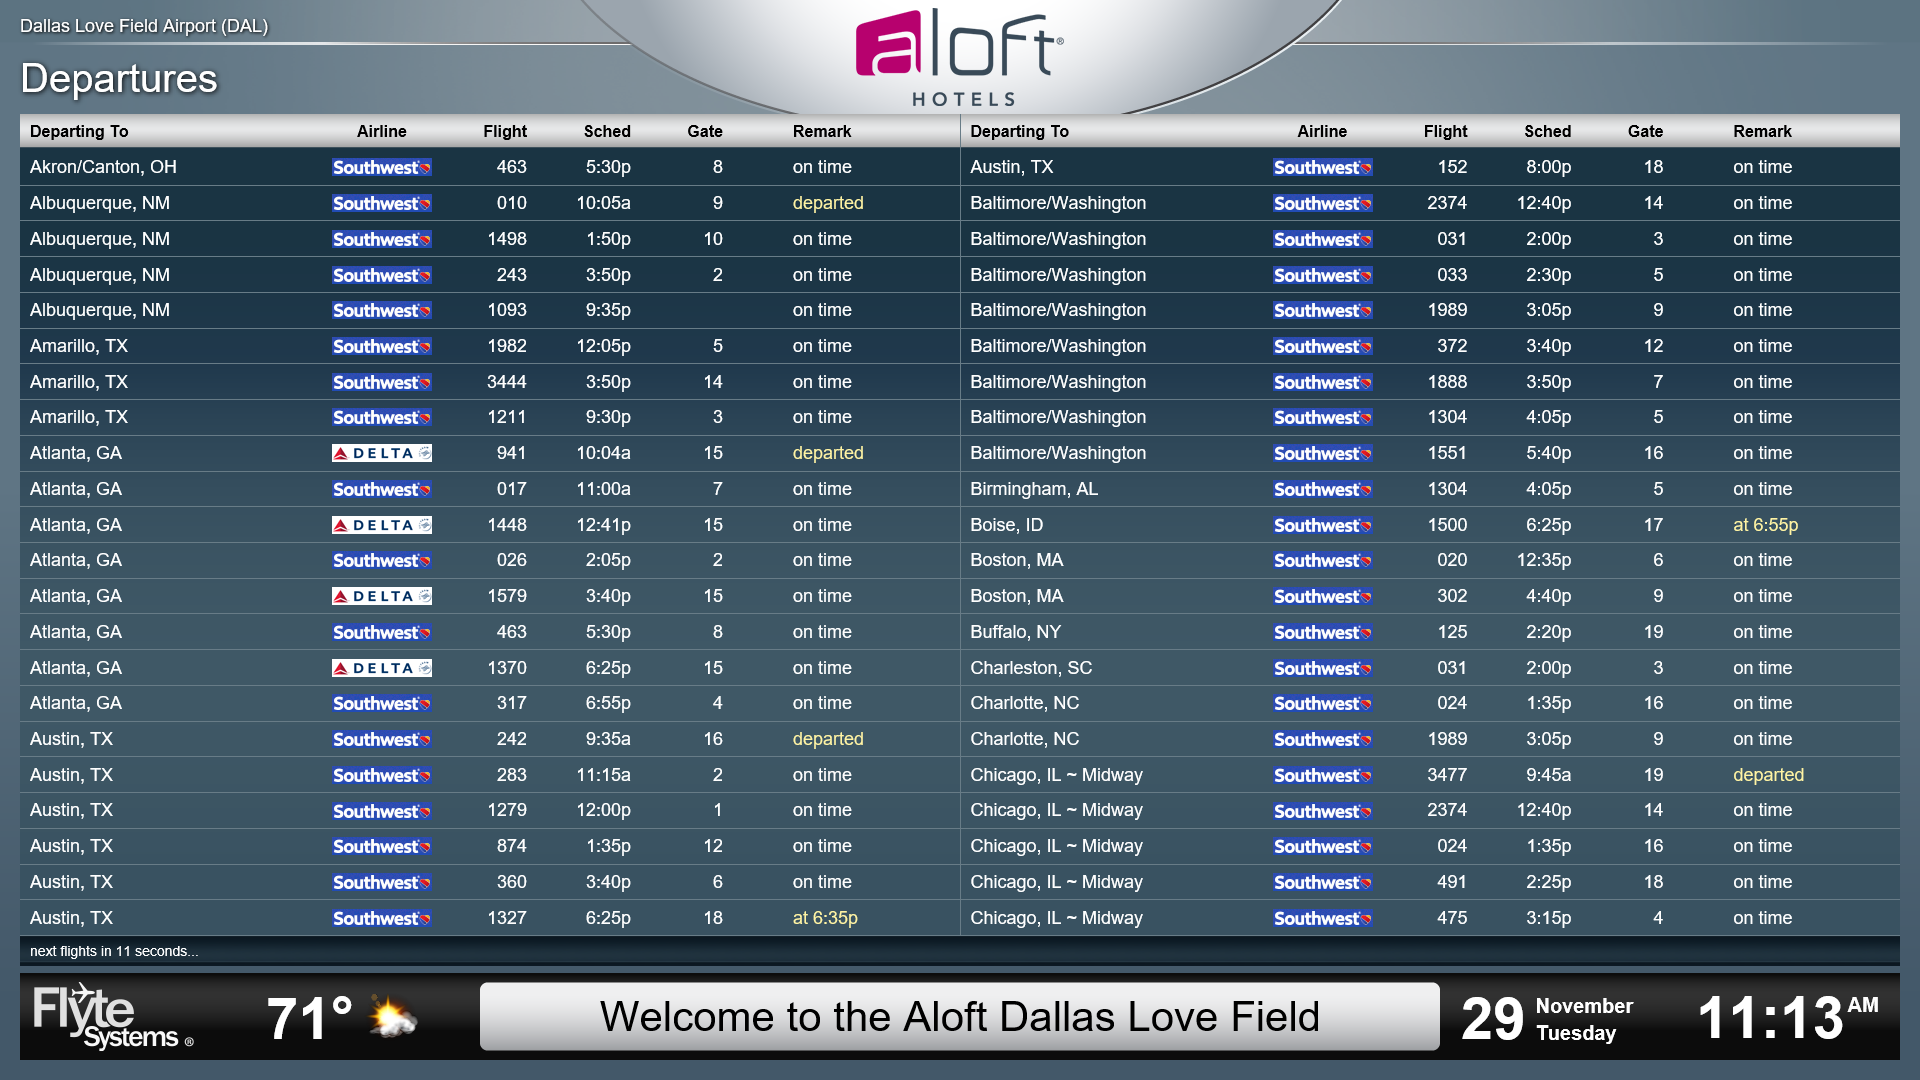 dual branded aloft and element dallas love field properties to